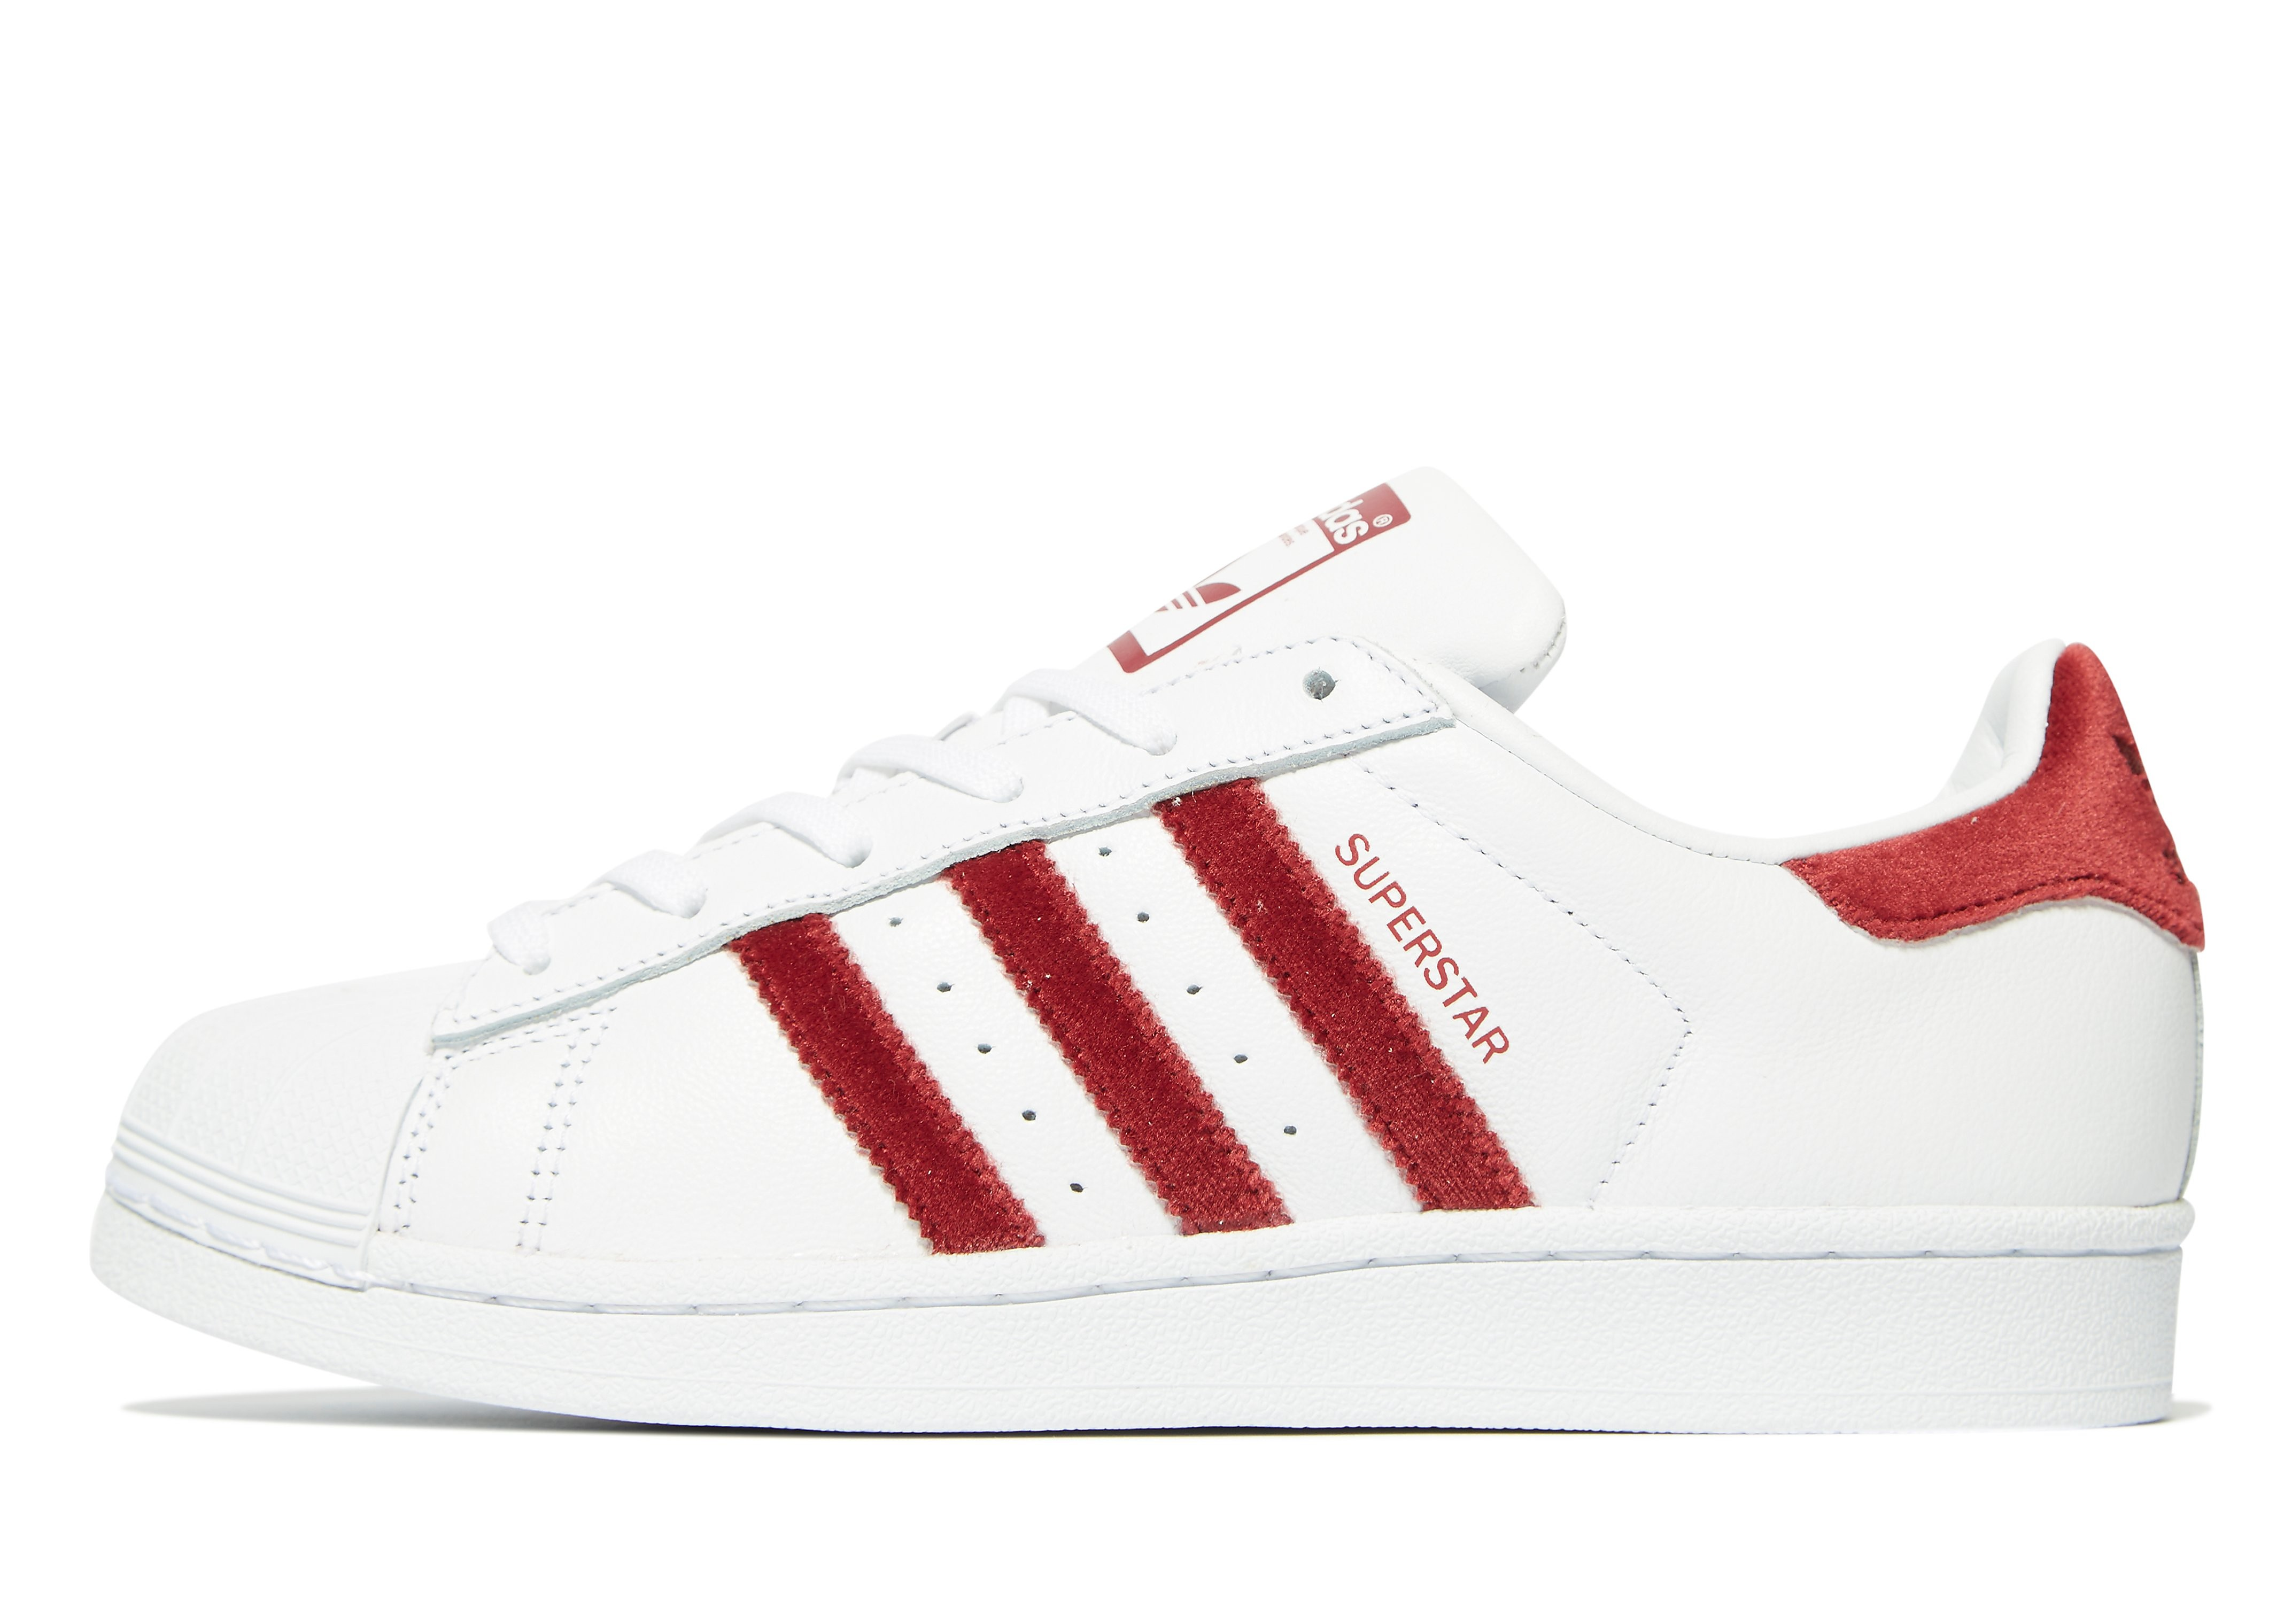 adidas Originals Superstar Velvet Women's